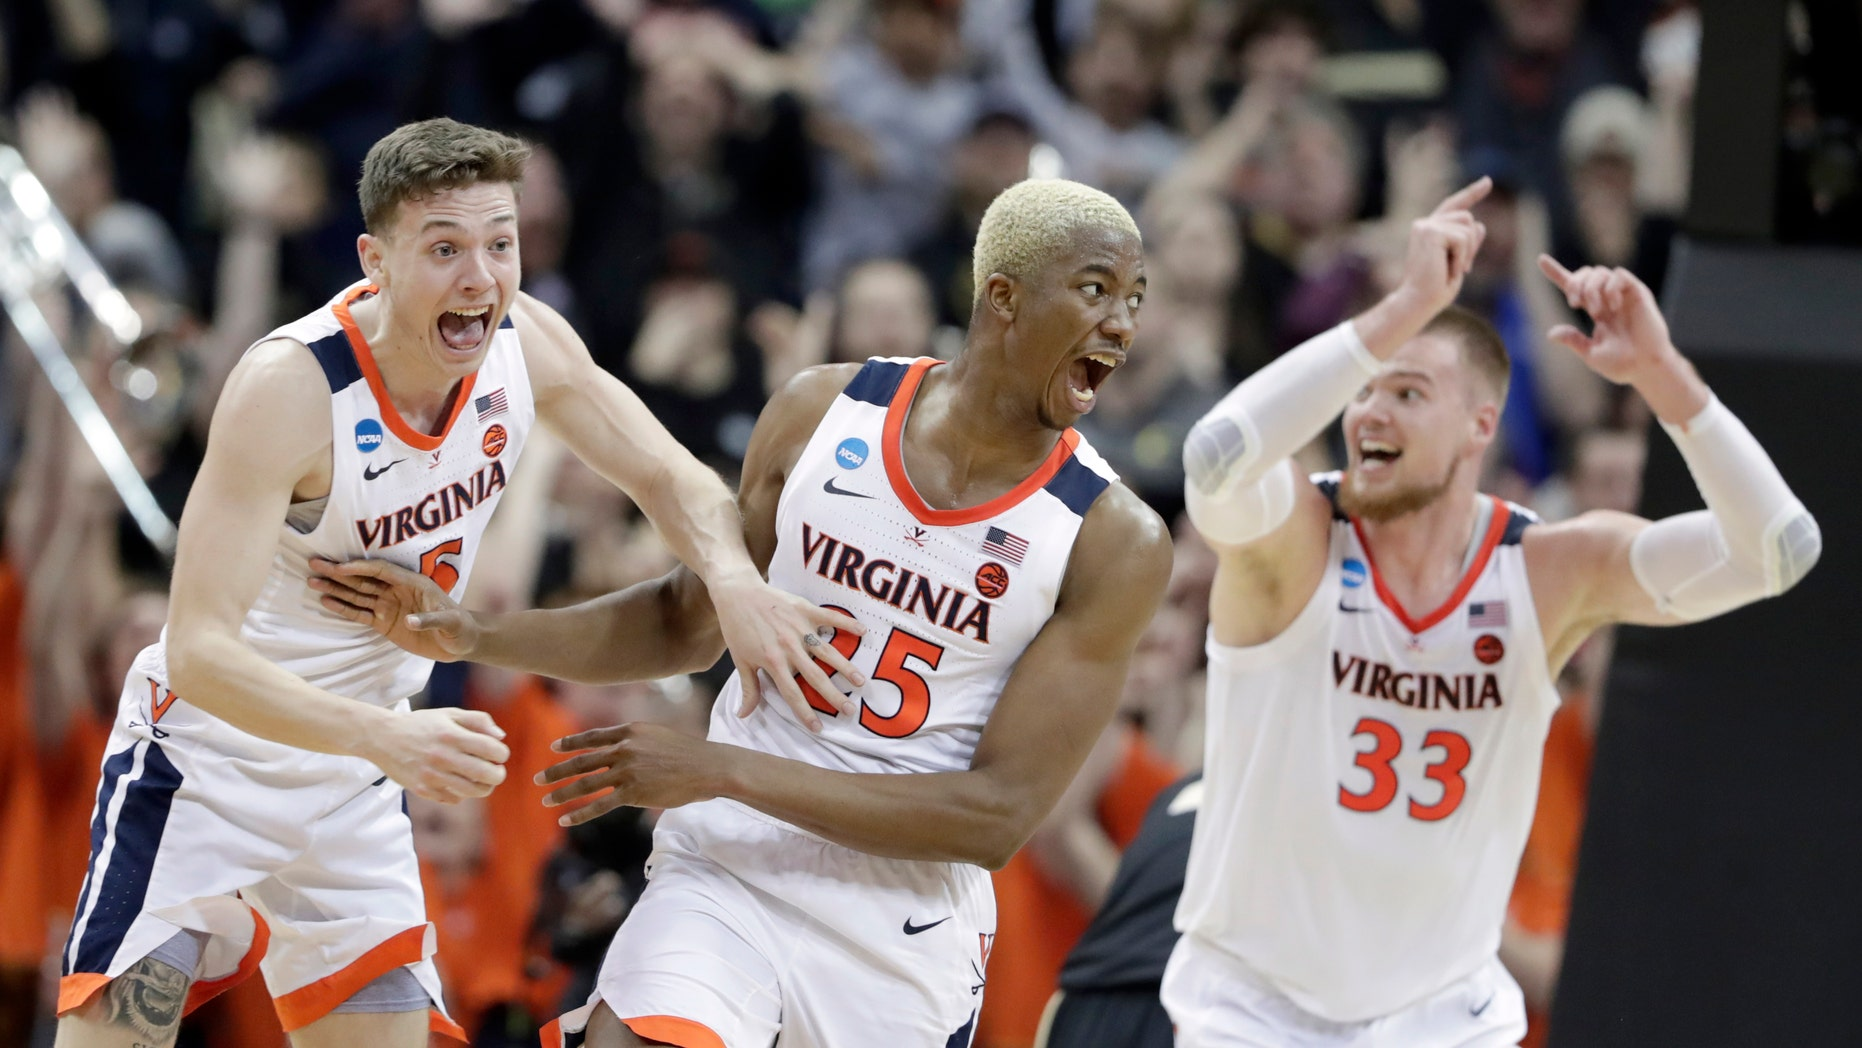 Virginia's Mamadi Diakite, center, reacts with teammates Kyle Guy and Jack Salt (33) after hitting a shot to send the game into overtime in the men's NCAA Tournament college basketball South Regional final game against Purdue, Saturday, March 30, 2019, in Louisville, Ky. (Associated Press)